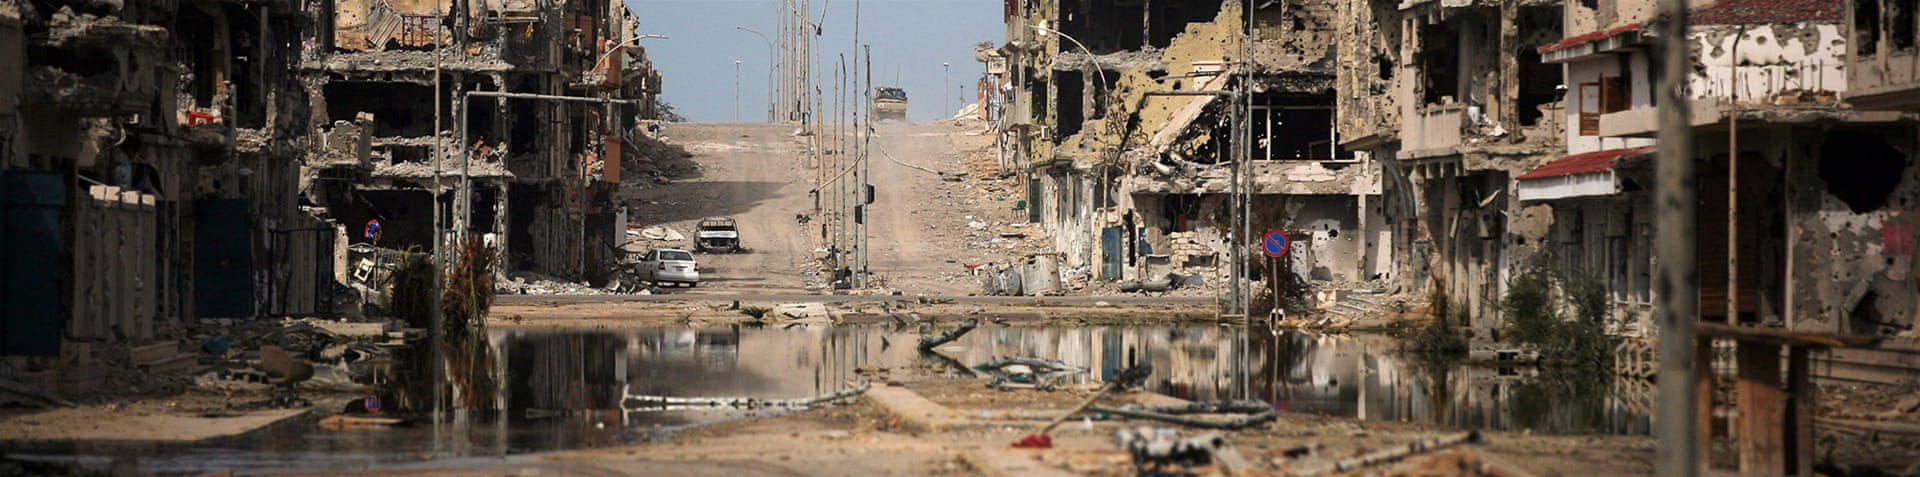 Fighting between ISIL and other armed groups has destroyed the Libyan city of Sirte [AP]